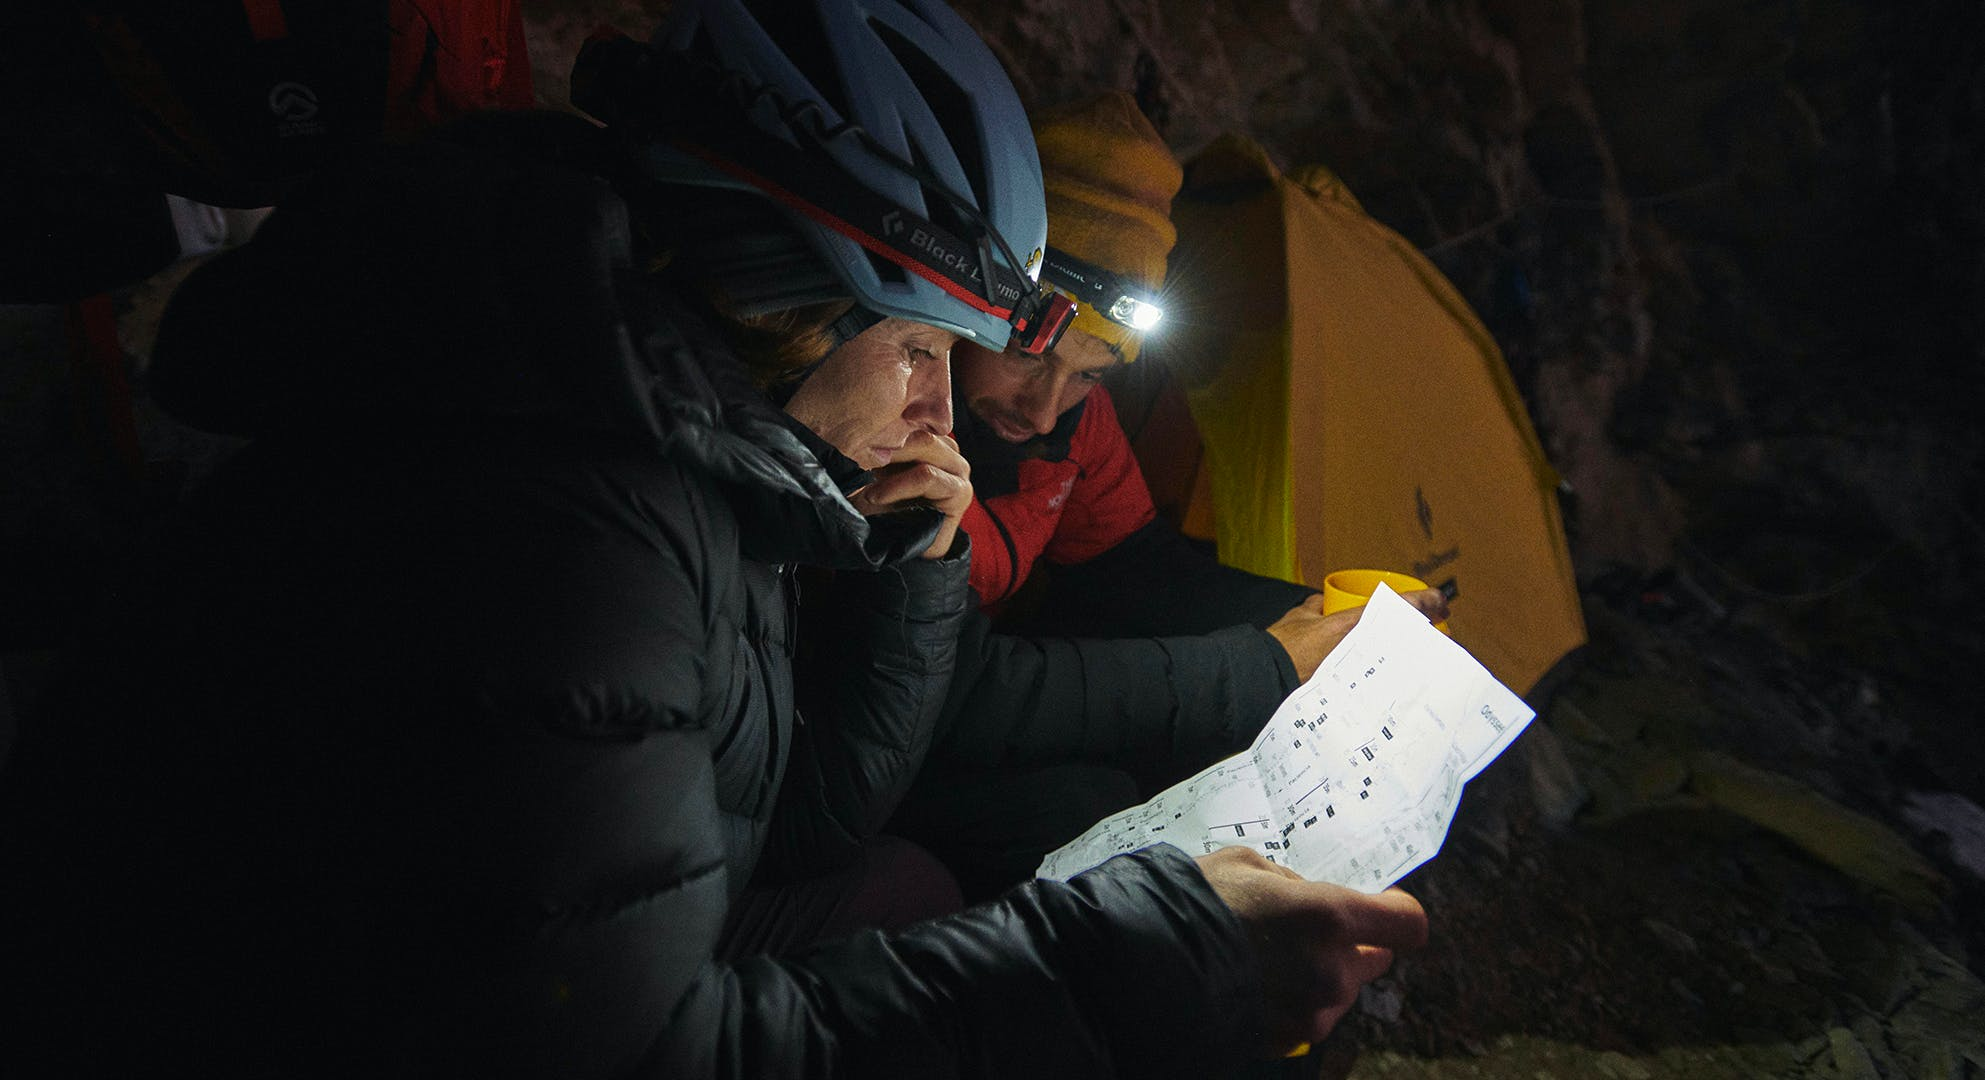 Black Diamond athletes Babsi Zangerl and her partner Jacopo Larcher planning the route